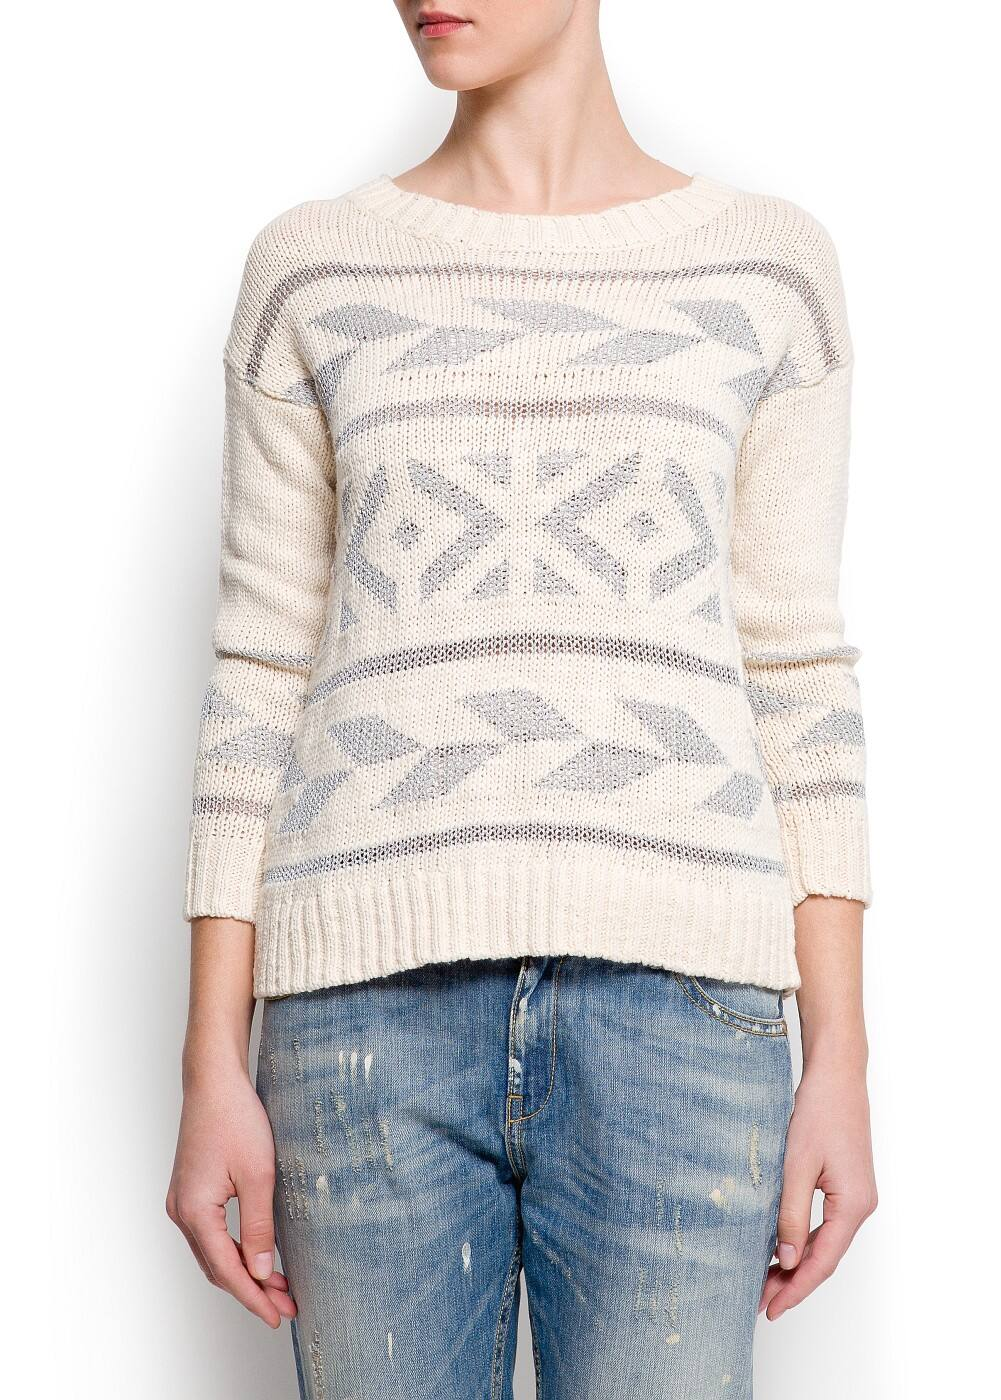 Tribal metallic sweater